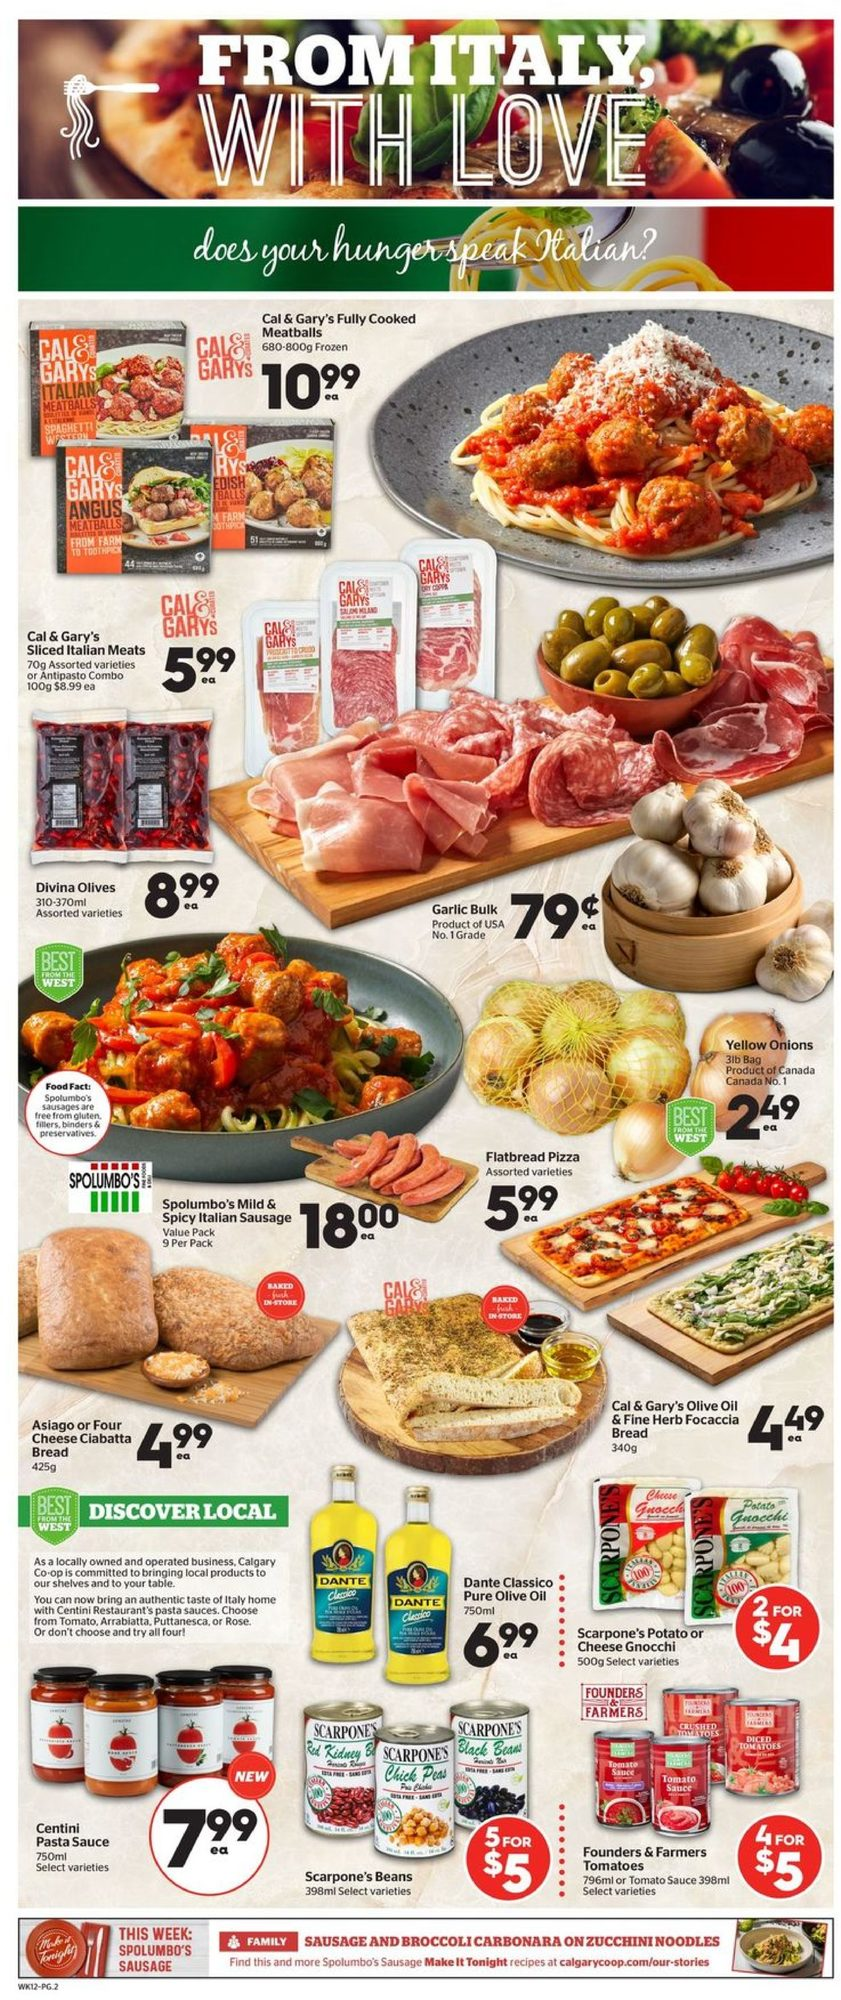 Calgary Co-op - Weekly Flyer Specials - Page 2